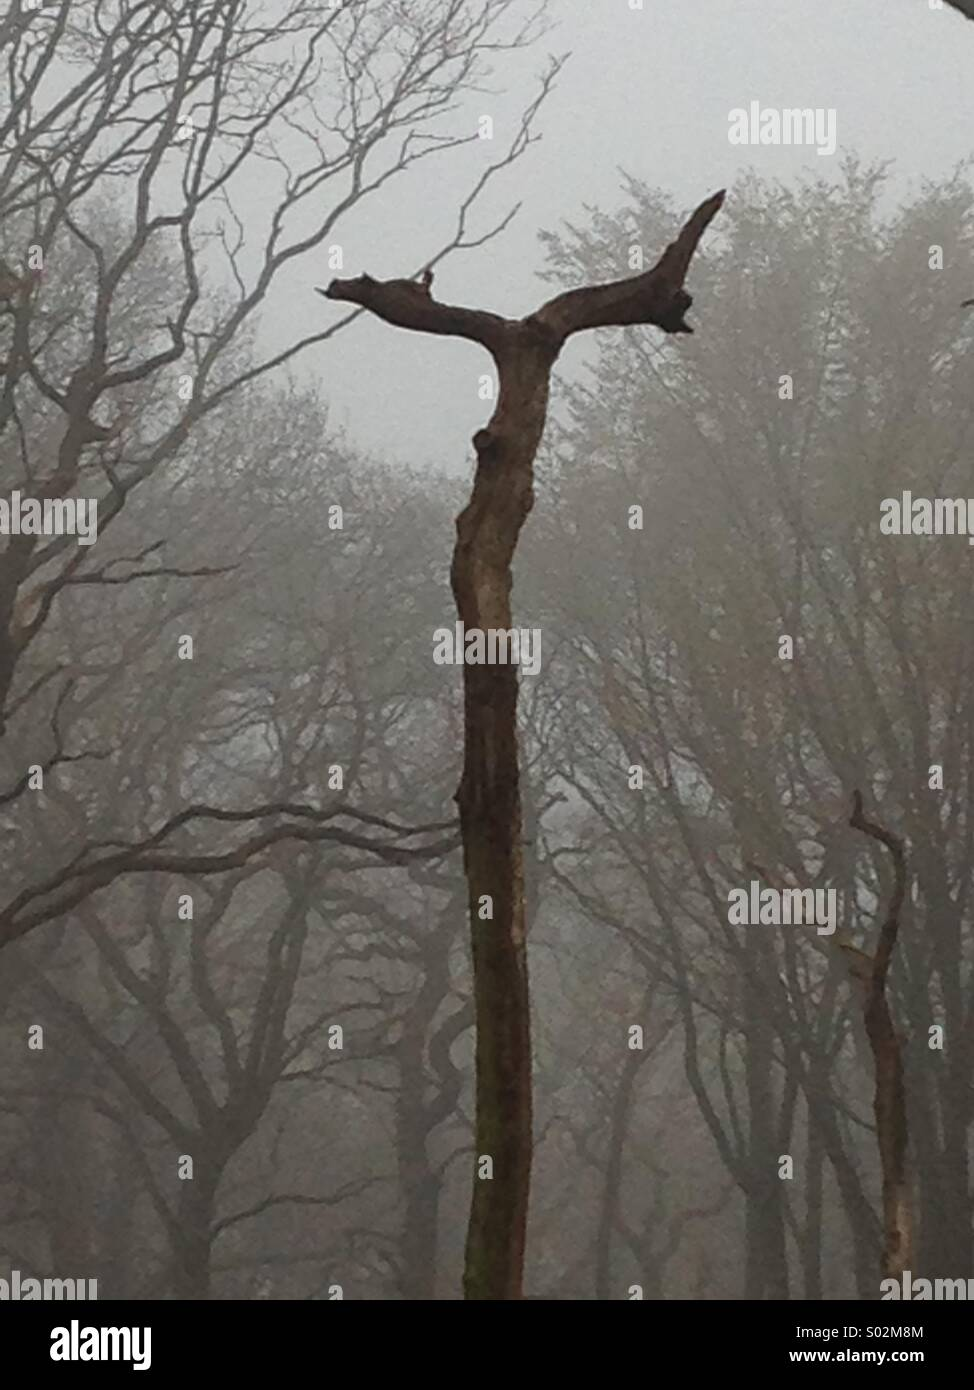 Dead tree in woods in mist with two prongs fork shaped - Stock Image